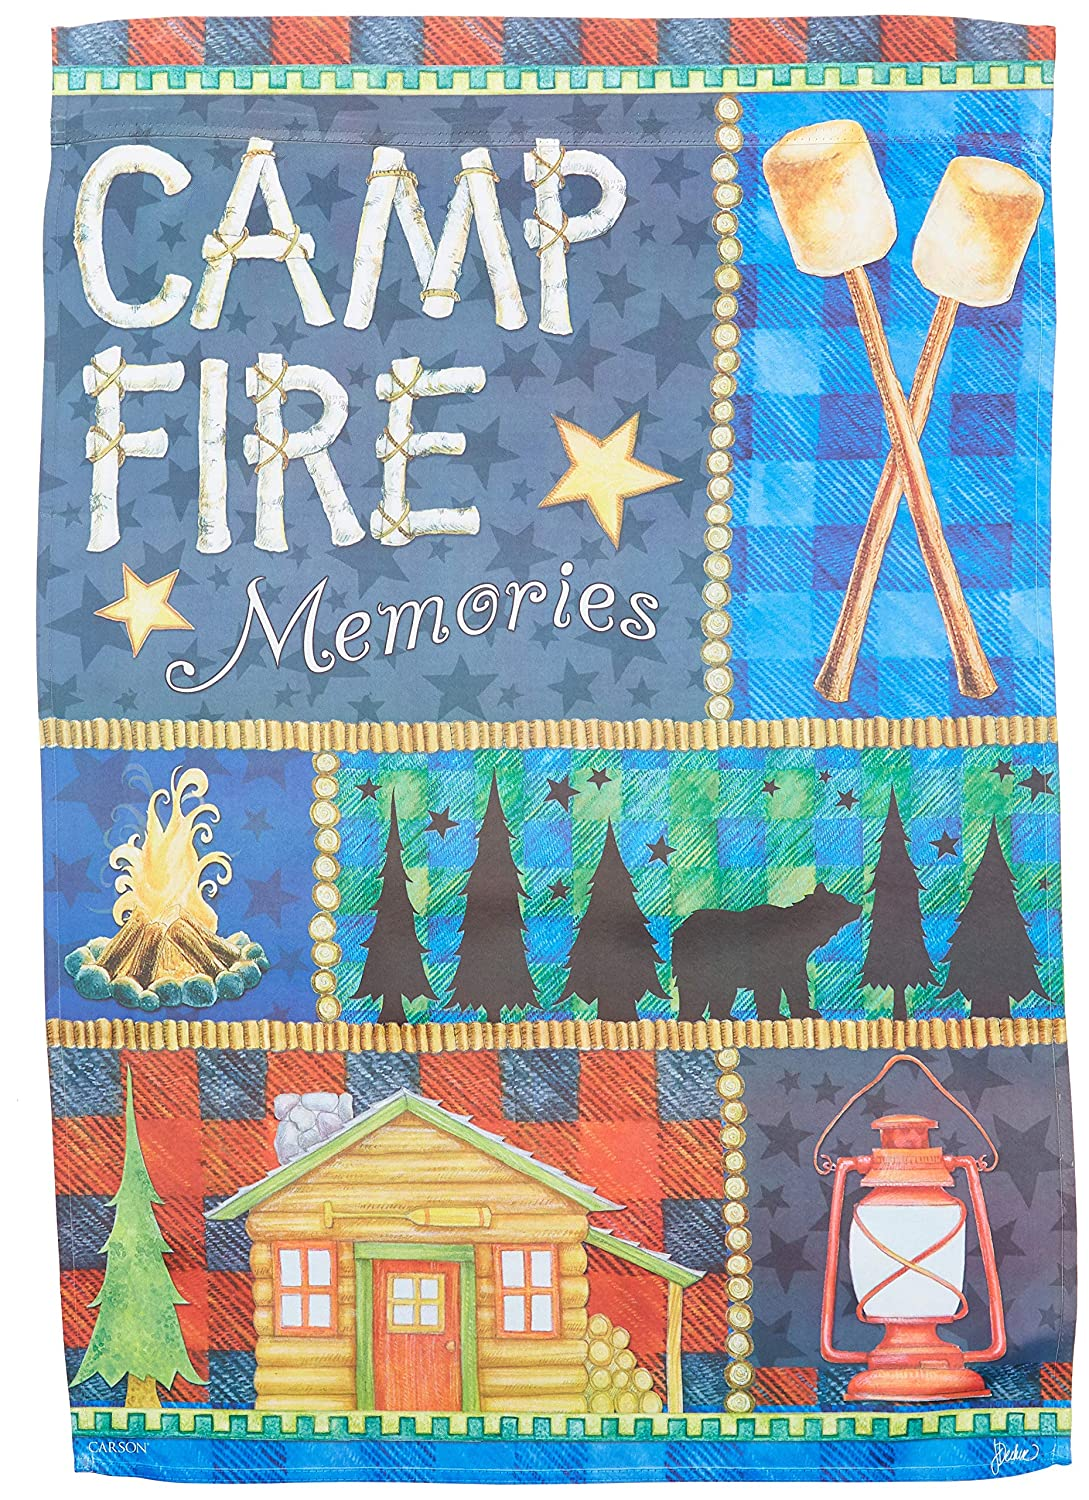 Carson Home Accents Trends Classic Large Flag, Campfire Memories